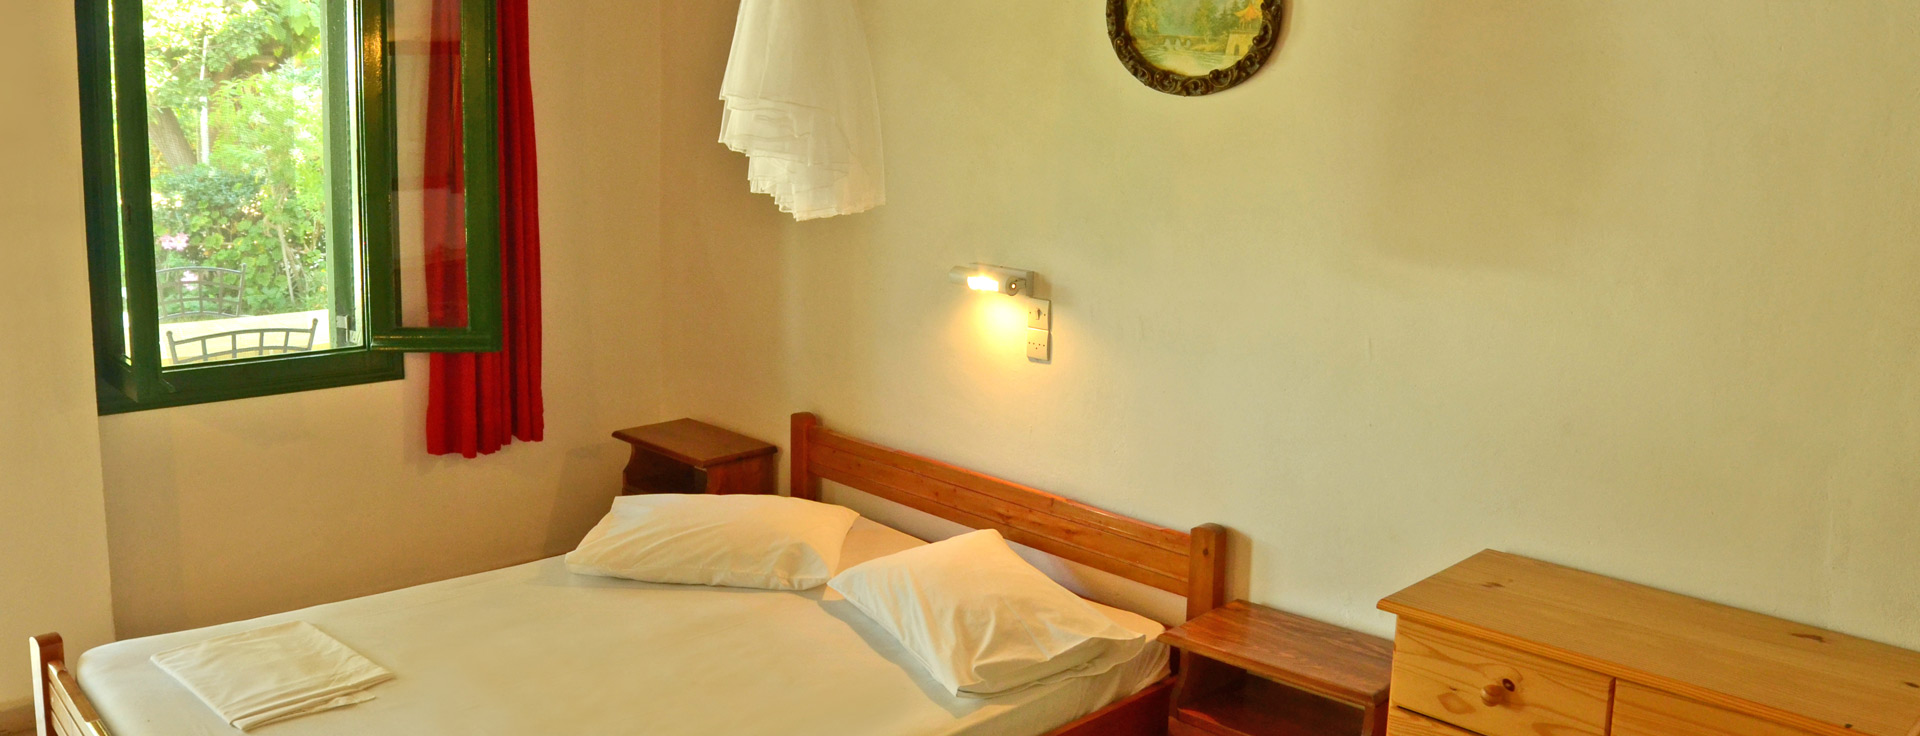 Apartment with double bed at Lemonia Accommodations.